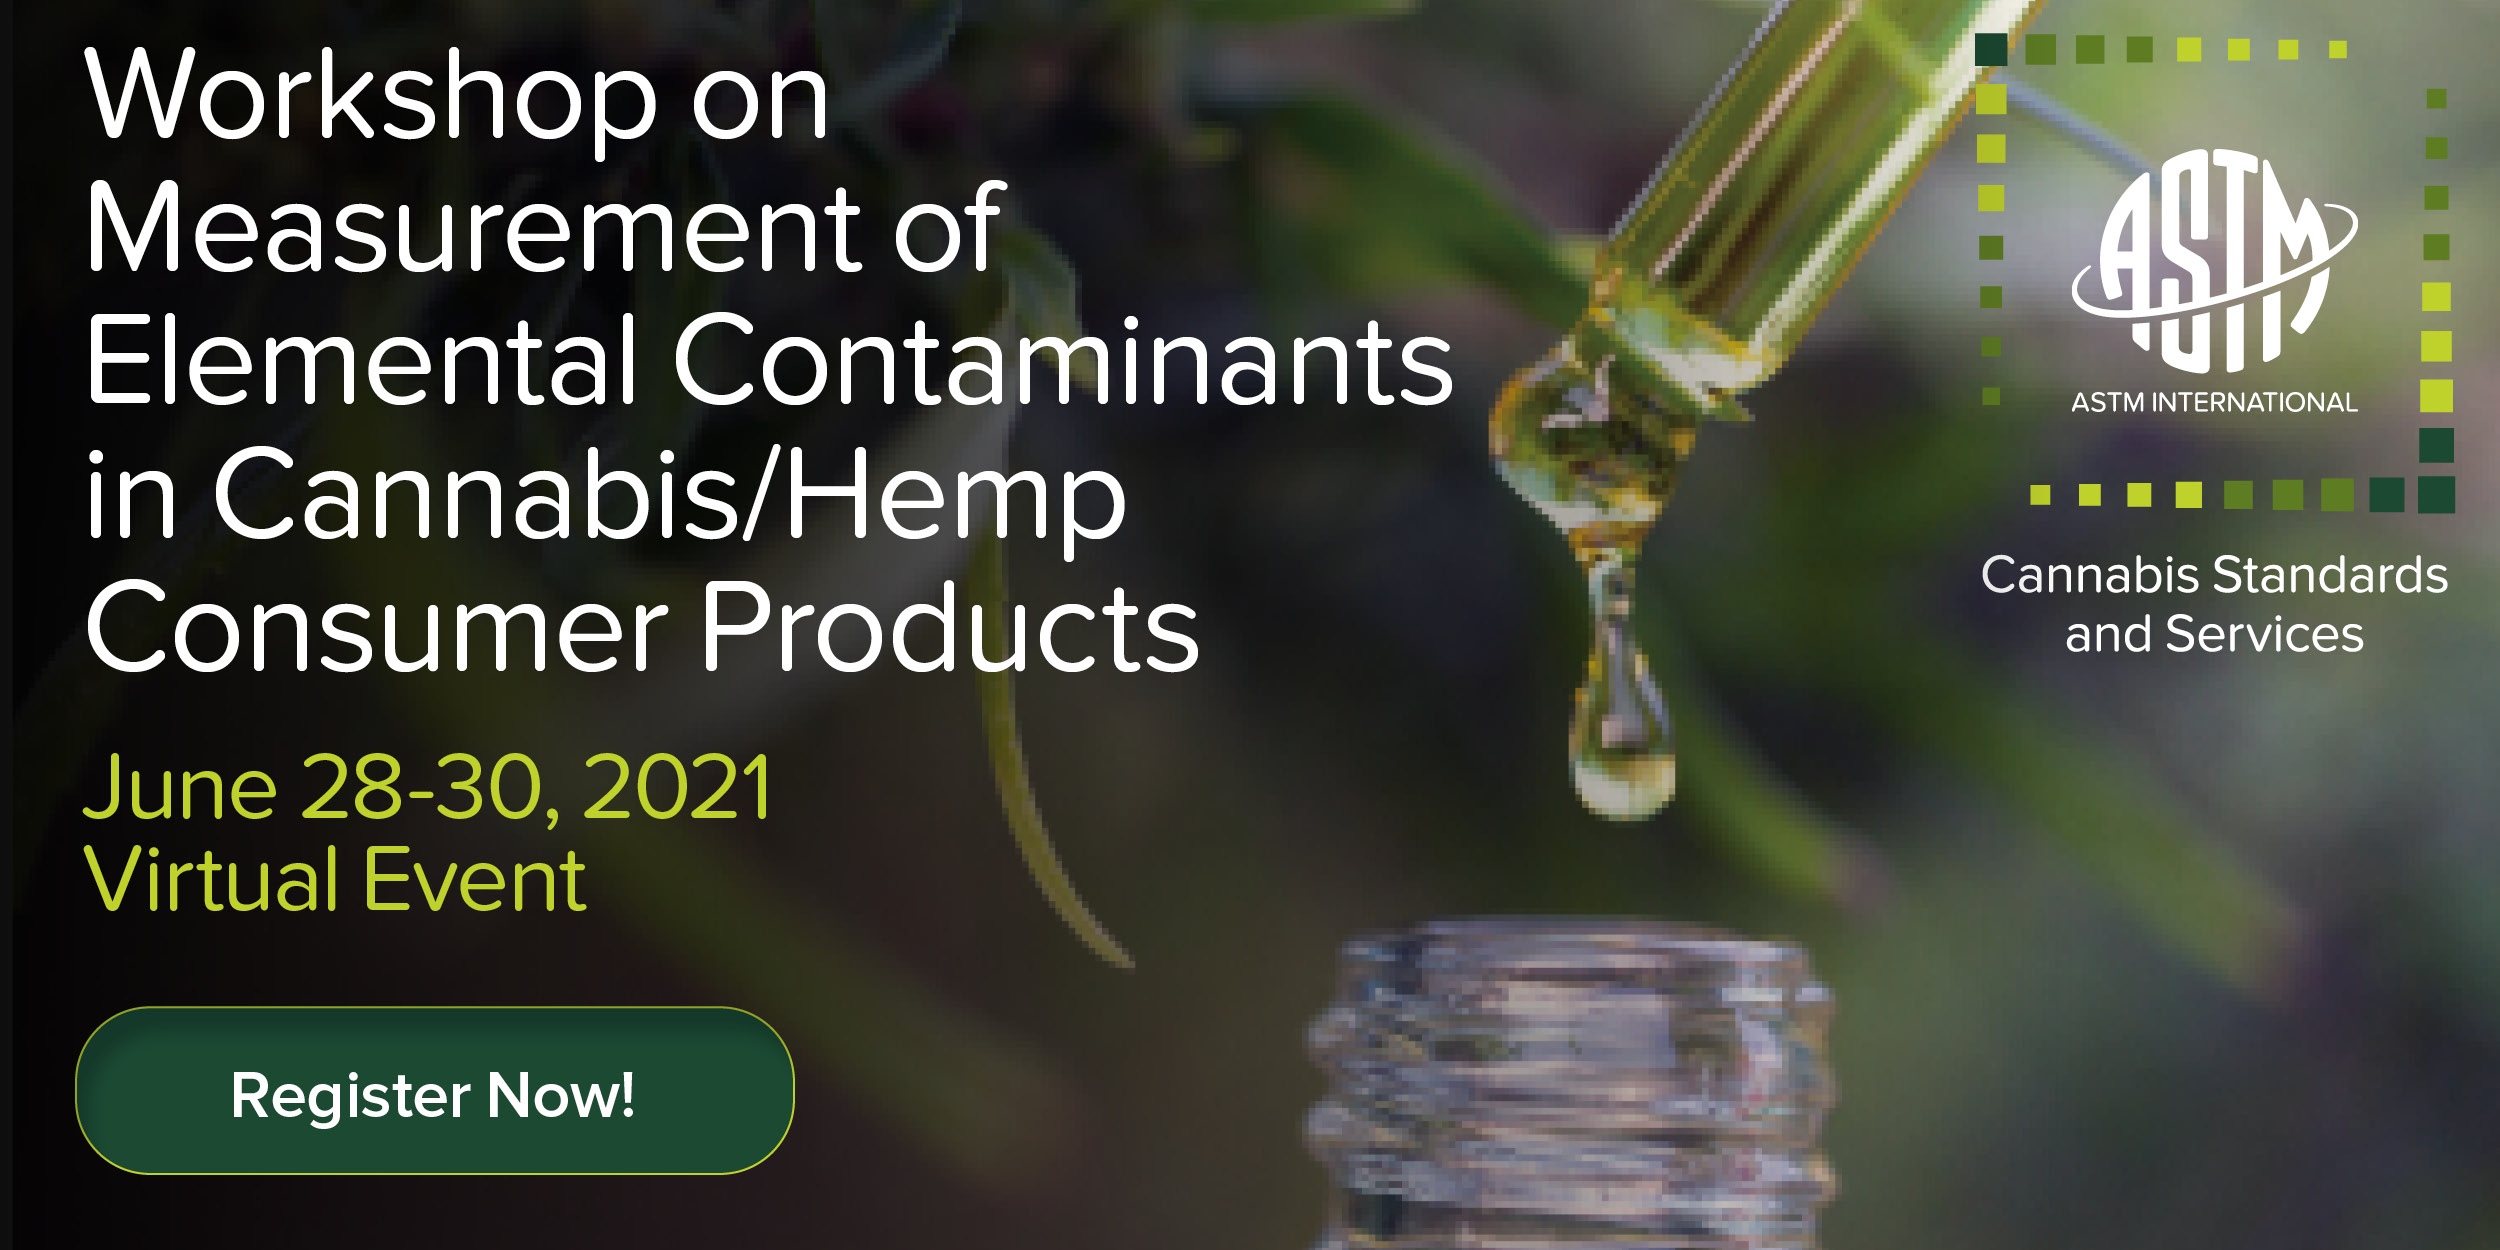 Workshop on Measurement of Elemental Contaminants in Cannabis/Hemp Consumer Products